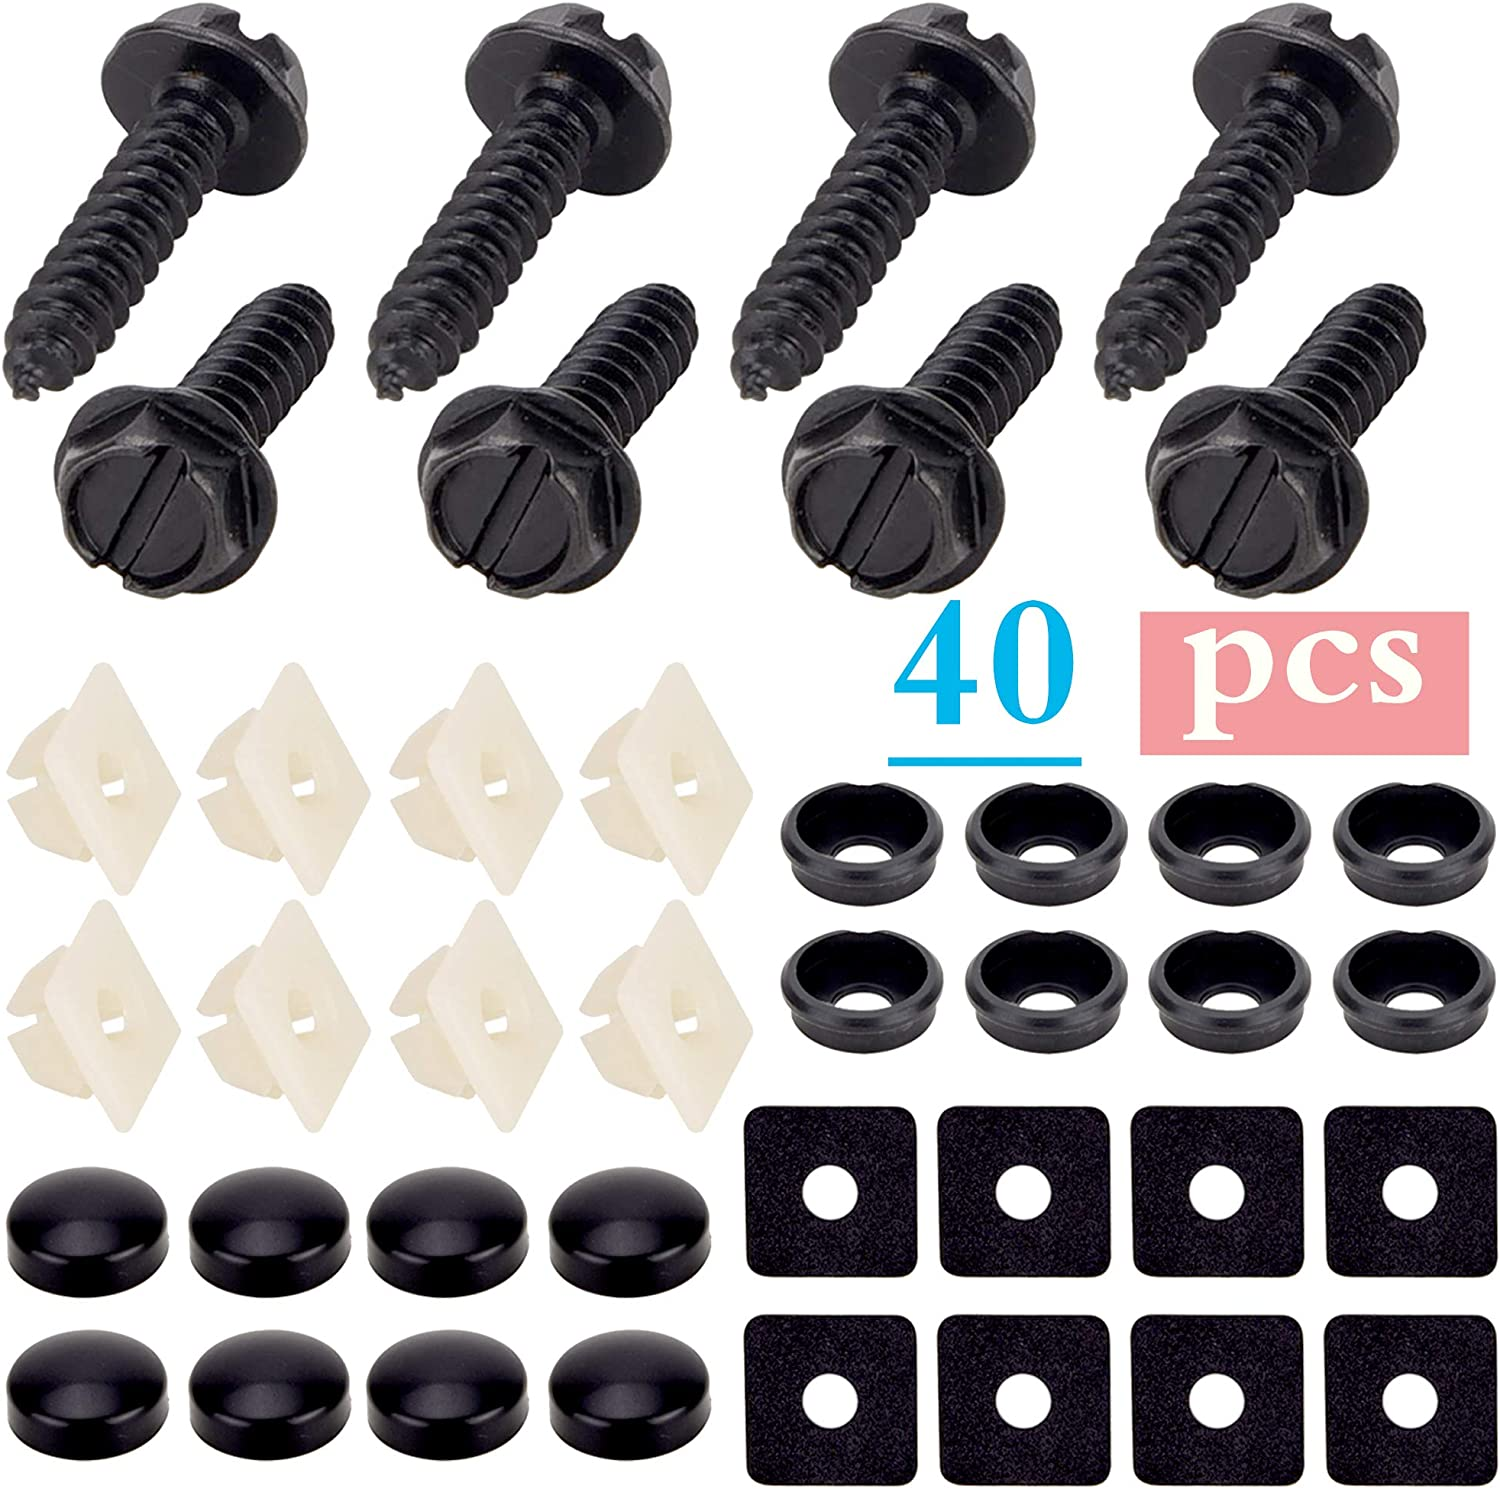 Black Screw Black Screw Cover Nylon Screw Insert Black Shockproof Pad Black Screw Washer for Fastening License Plates Covers and Frames BingSnow 40 Pcs License Plate Screws Inserts Fastener Kit